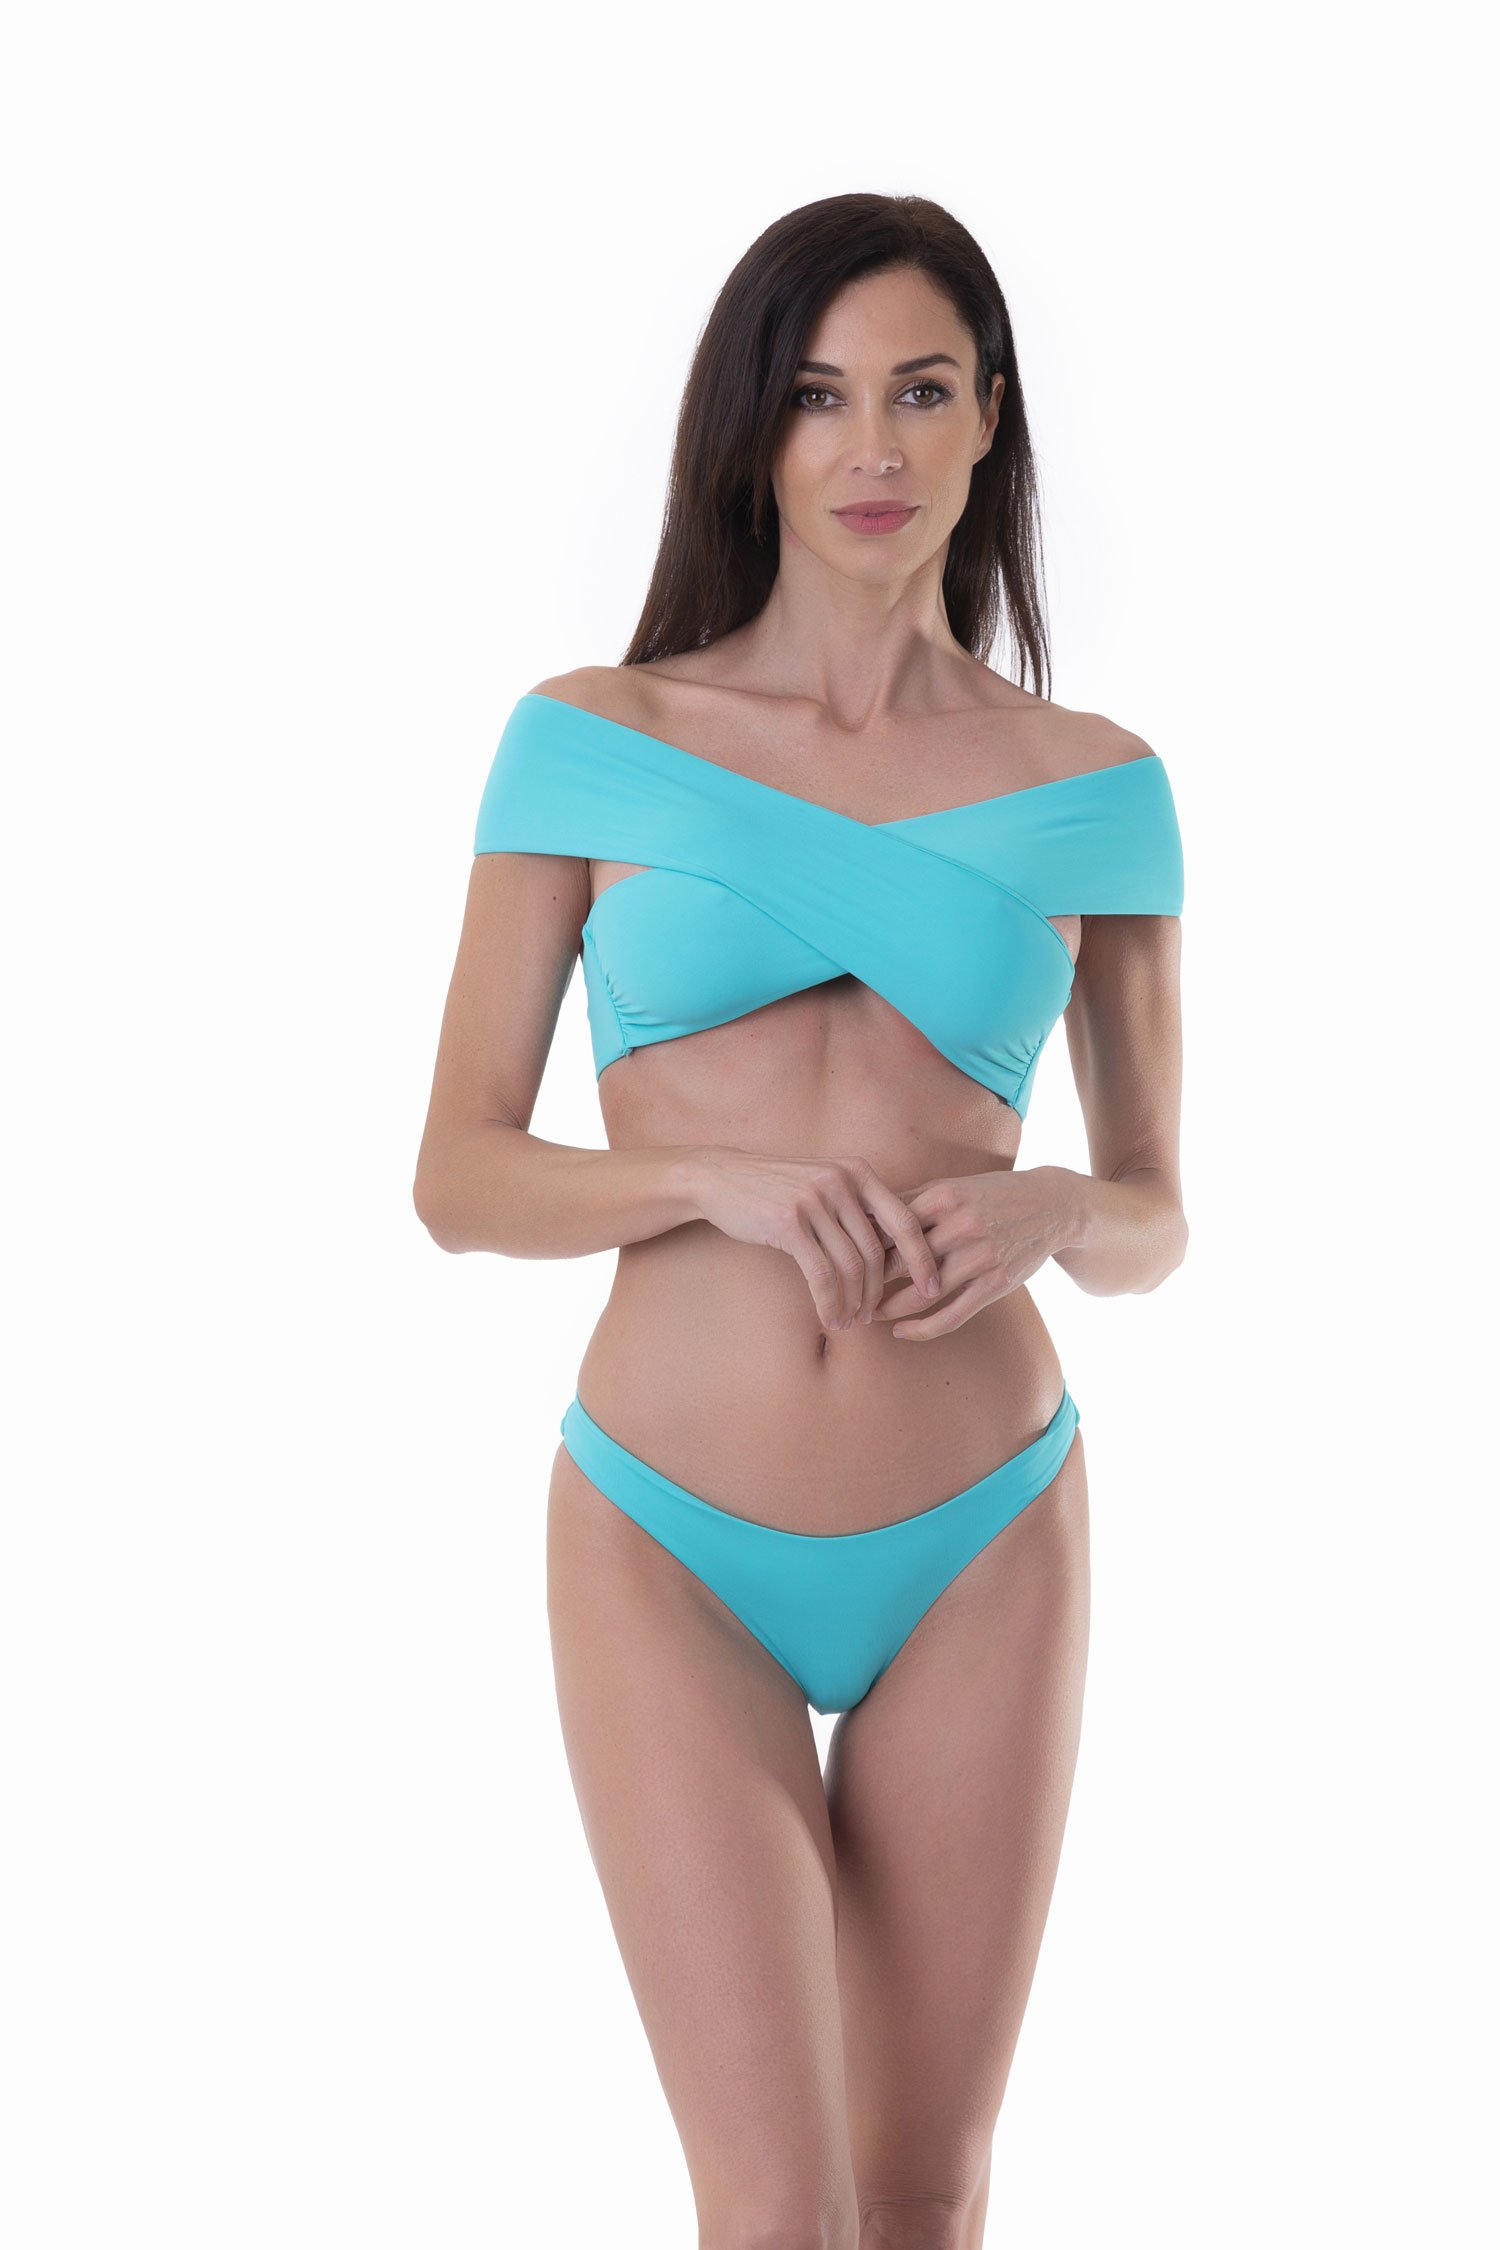 SOLID COLOUR BIKINI TOP WITH CROSSED BANDS - Turchese Ciano